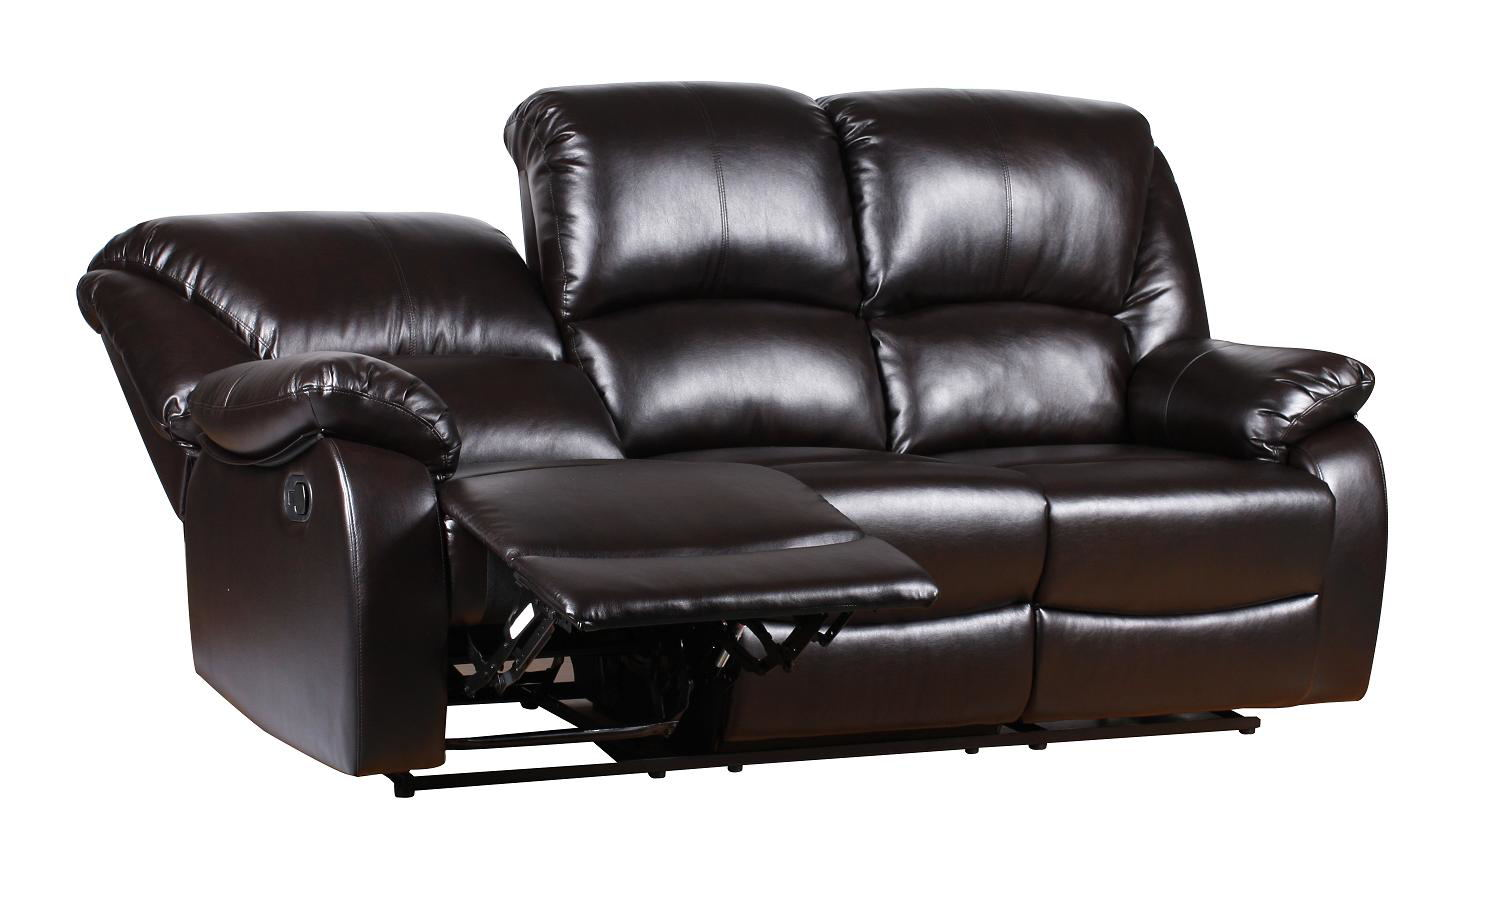 New Luxury Valencia Bonded Leather Recliner Sofa Suite